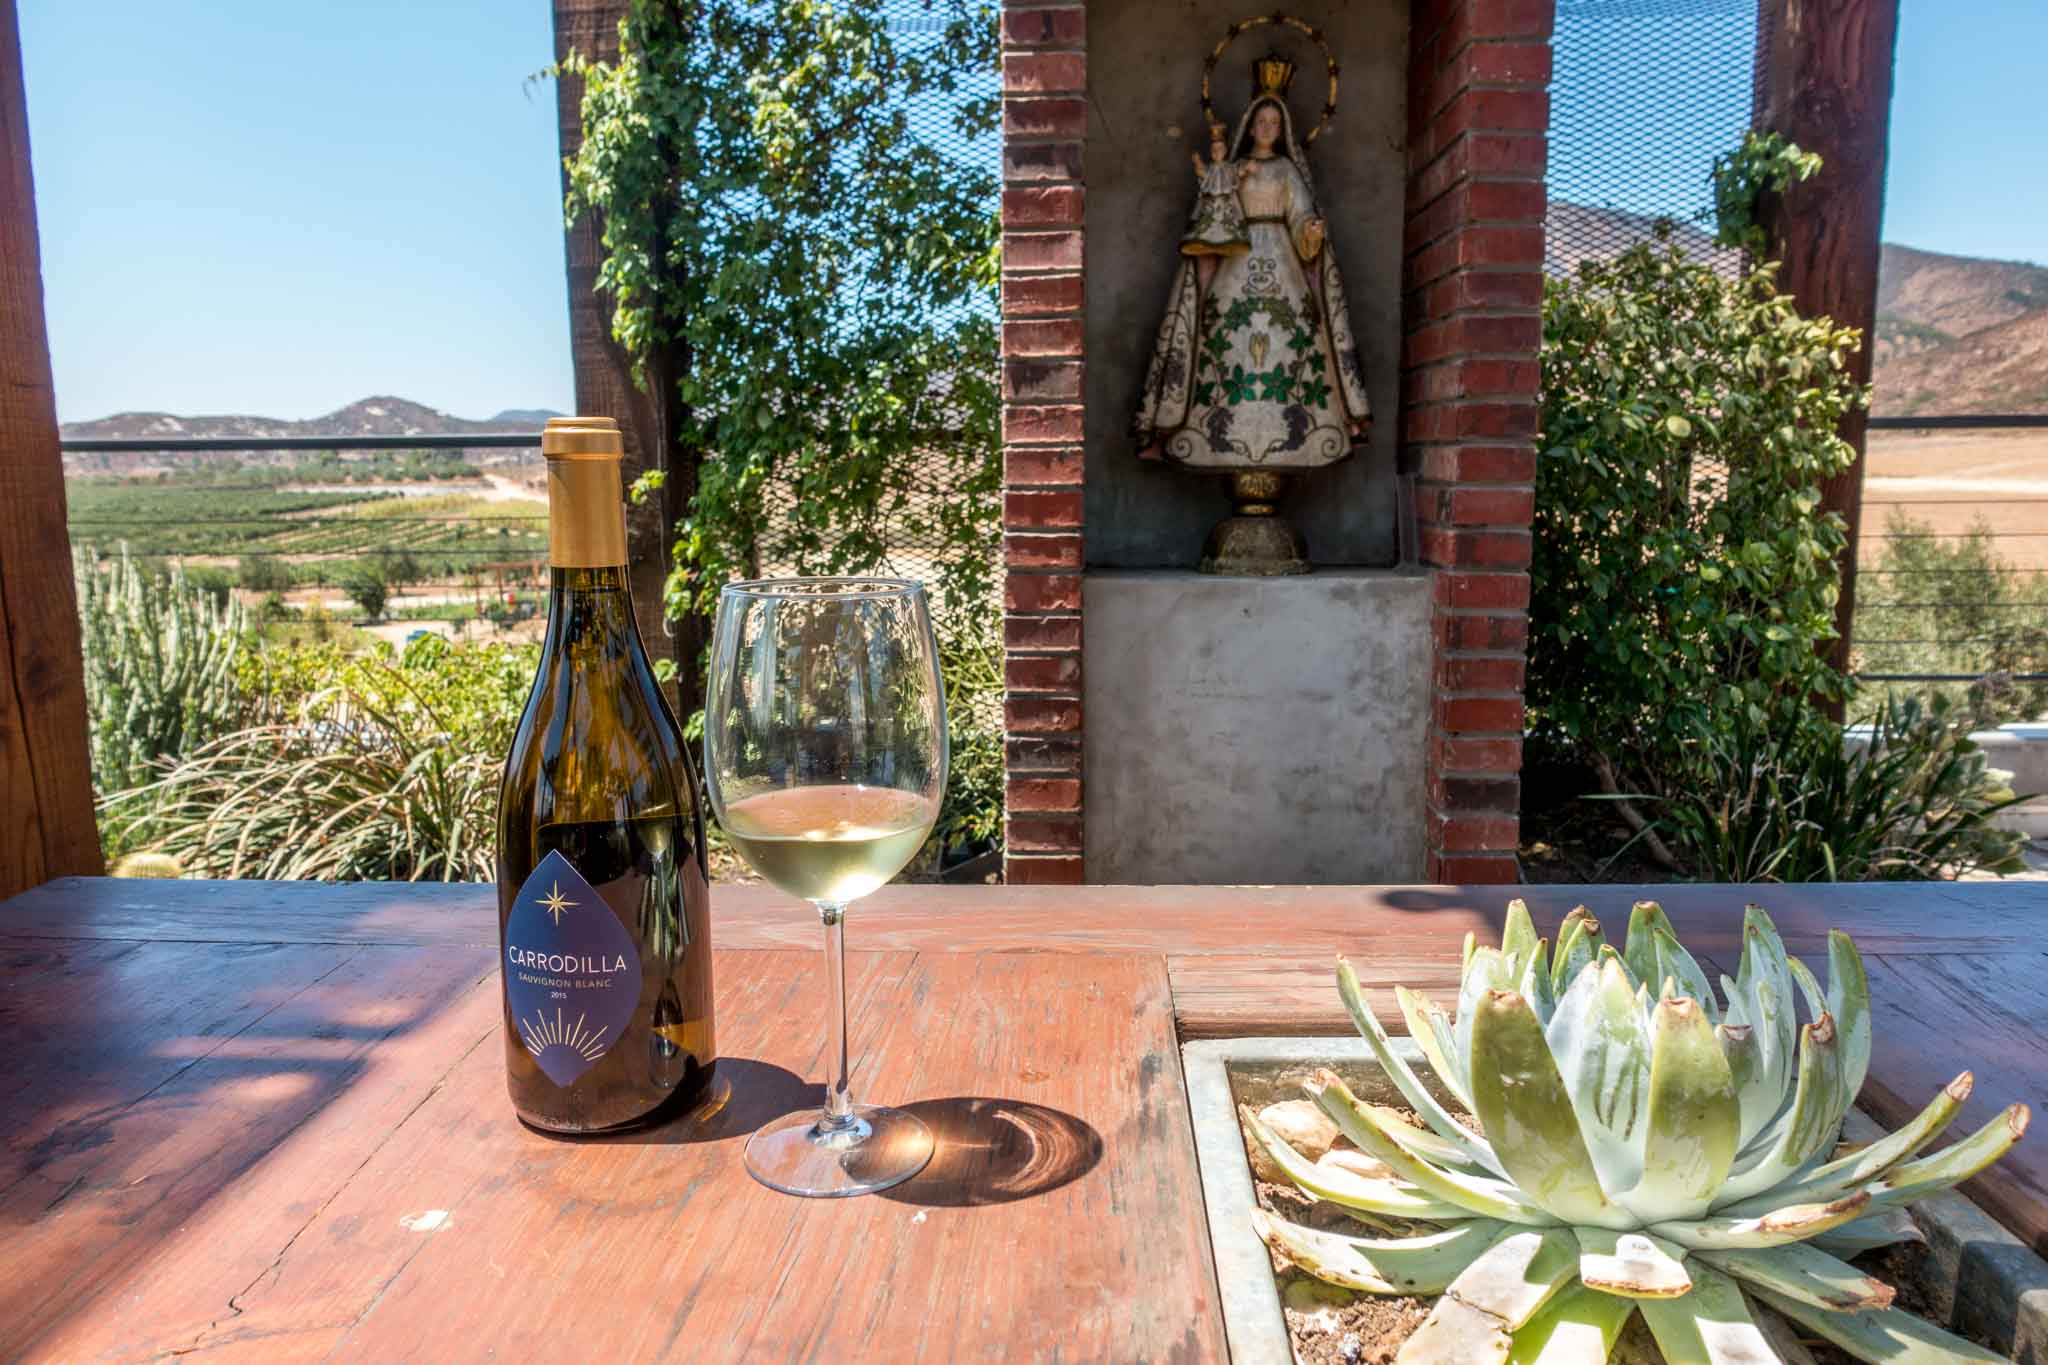 Enjoying the wines from the Mexico wine country in a garden